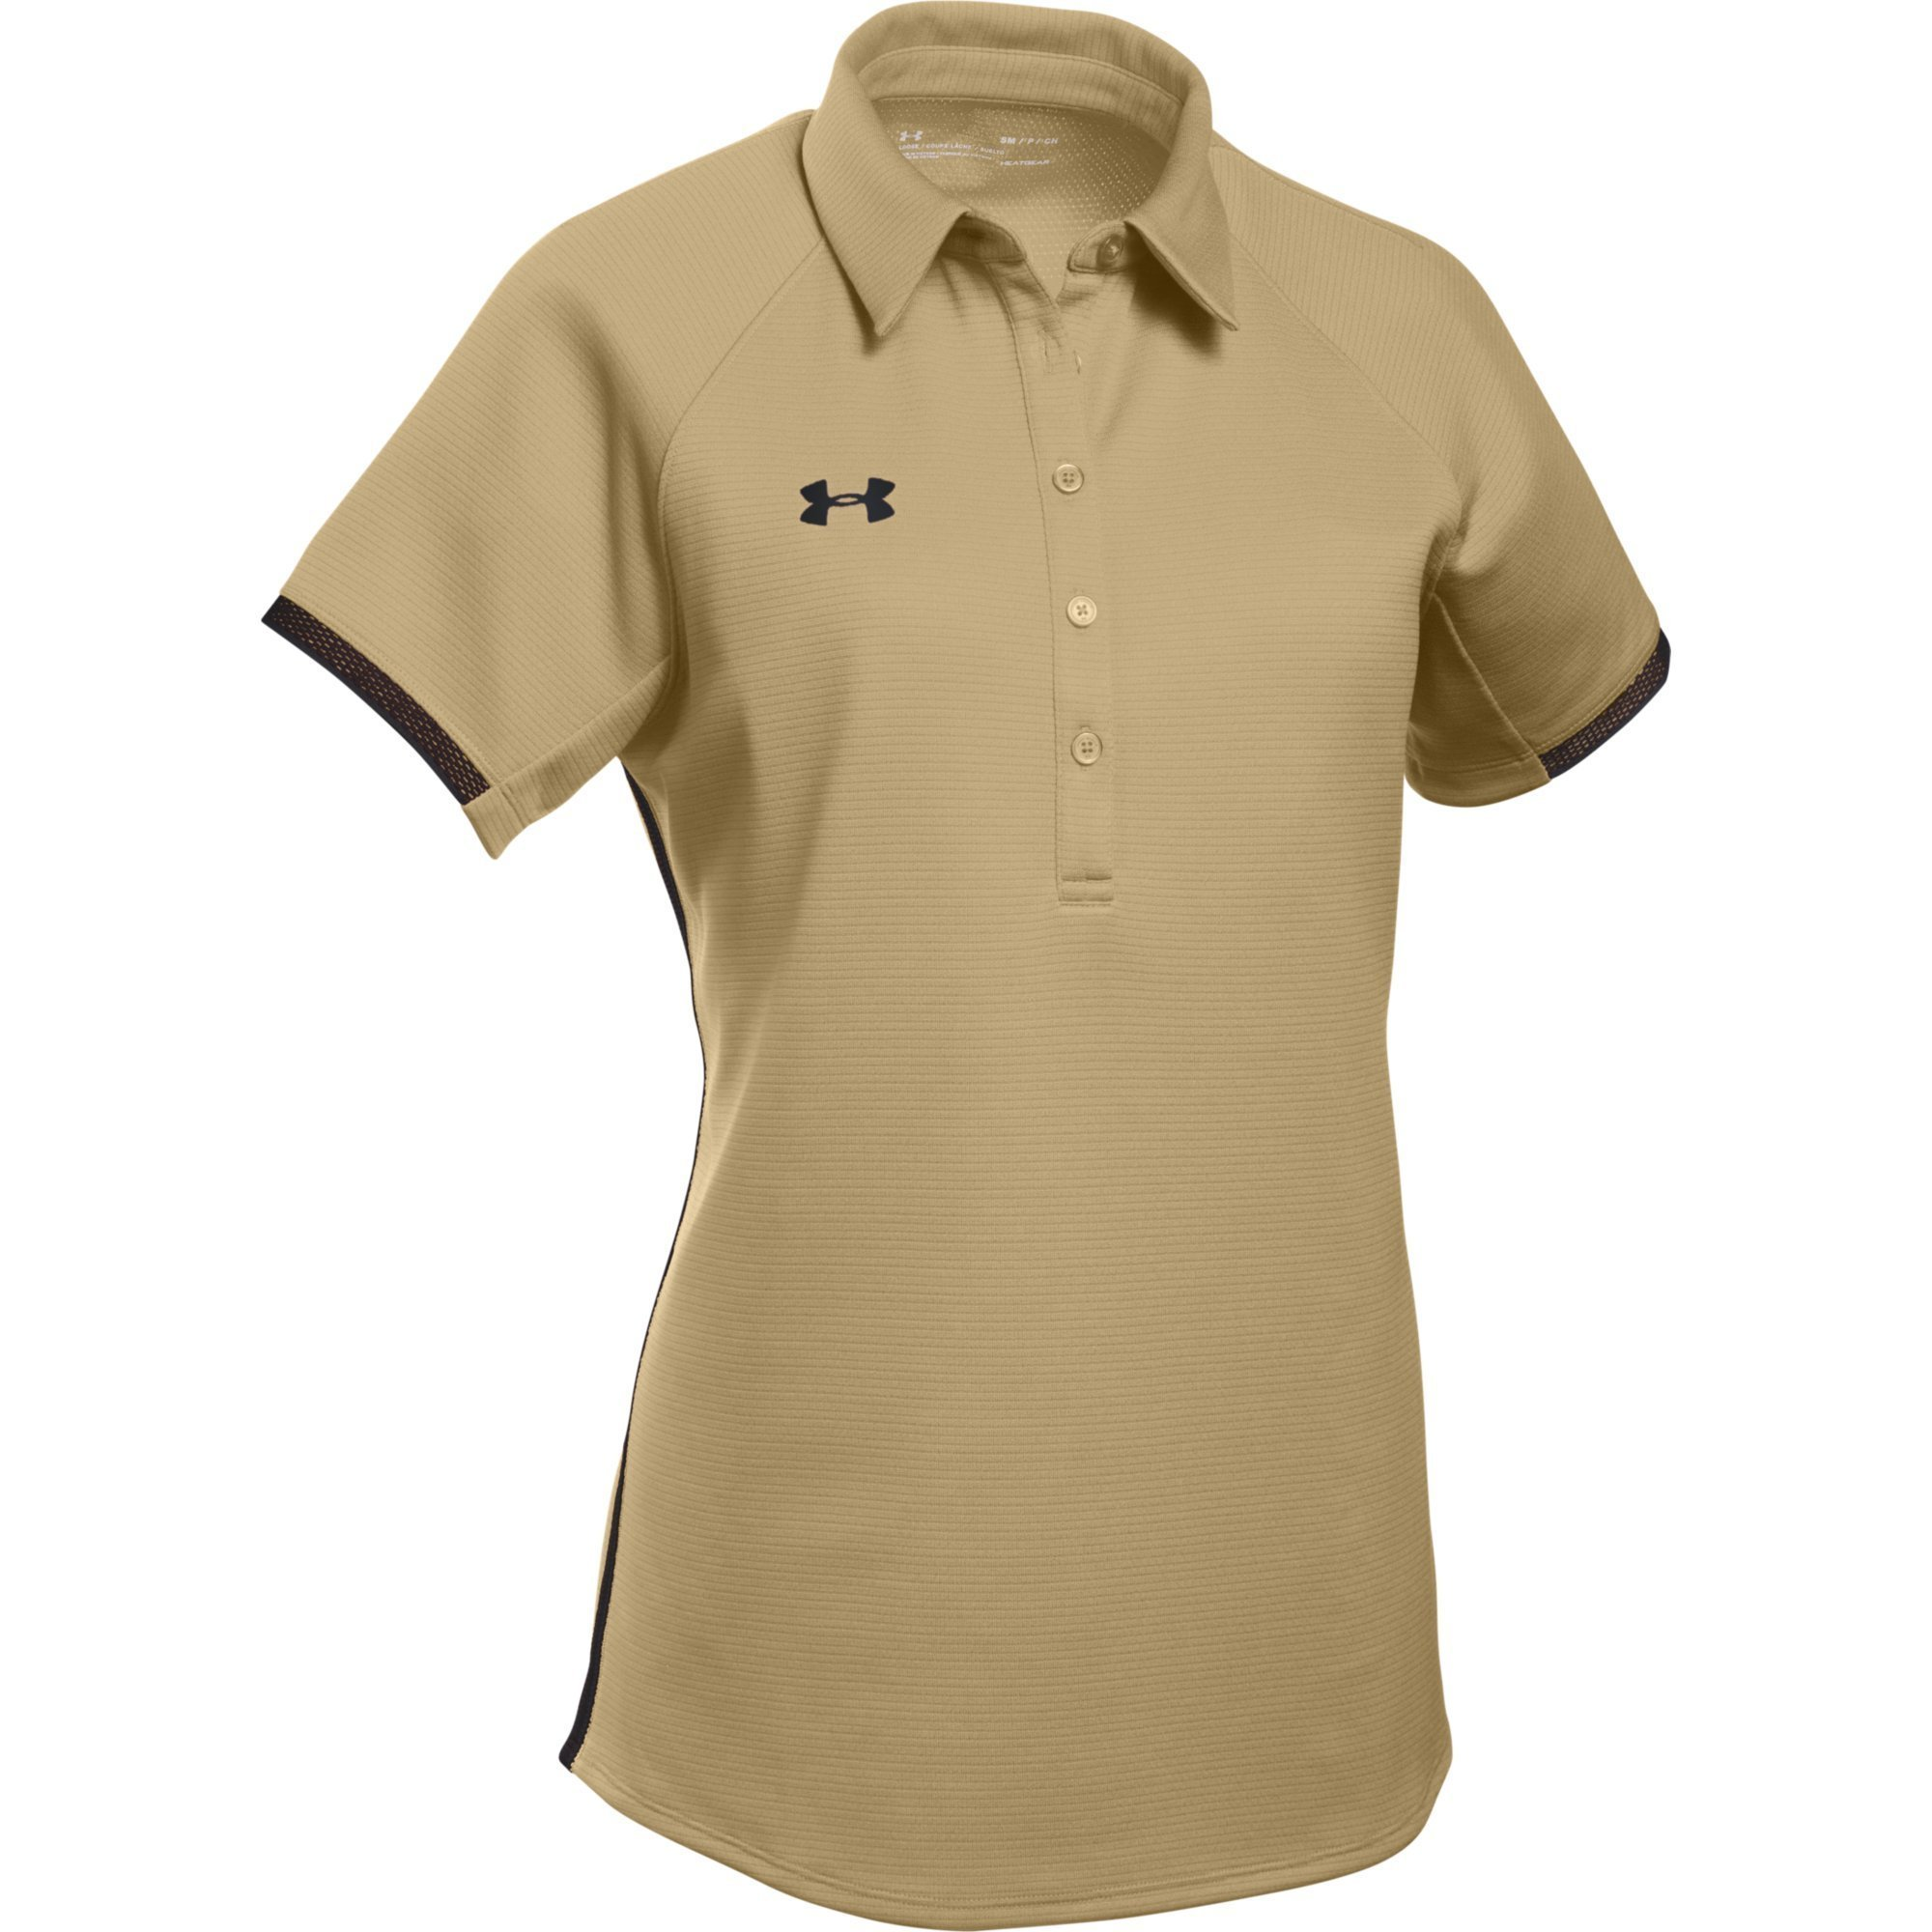 Under Armour Women's UA Rival Polo (Small, Vegas Gold-Black) by Under Armour